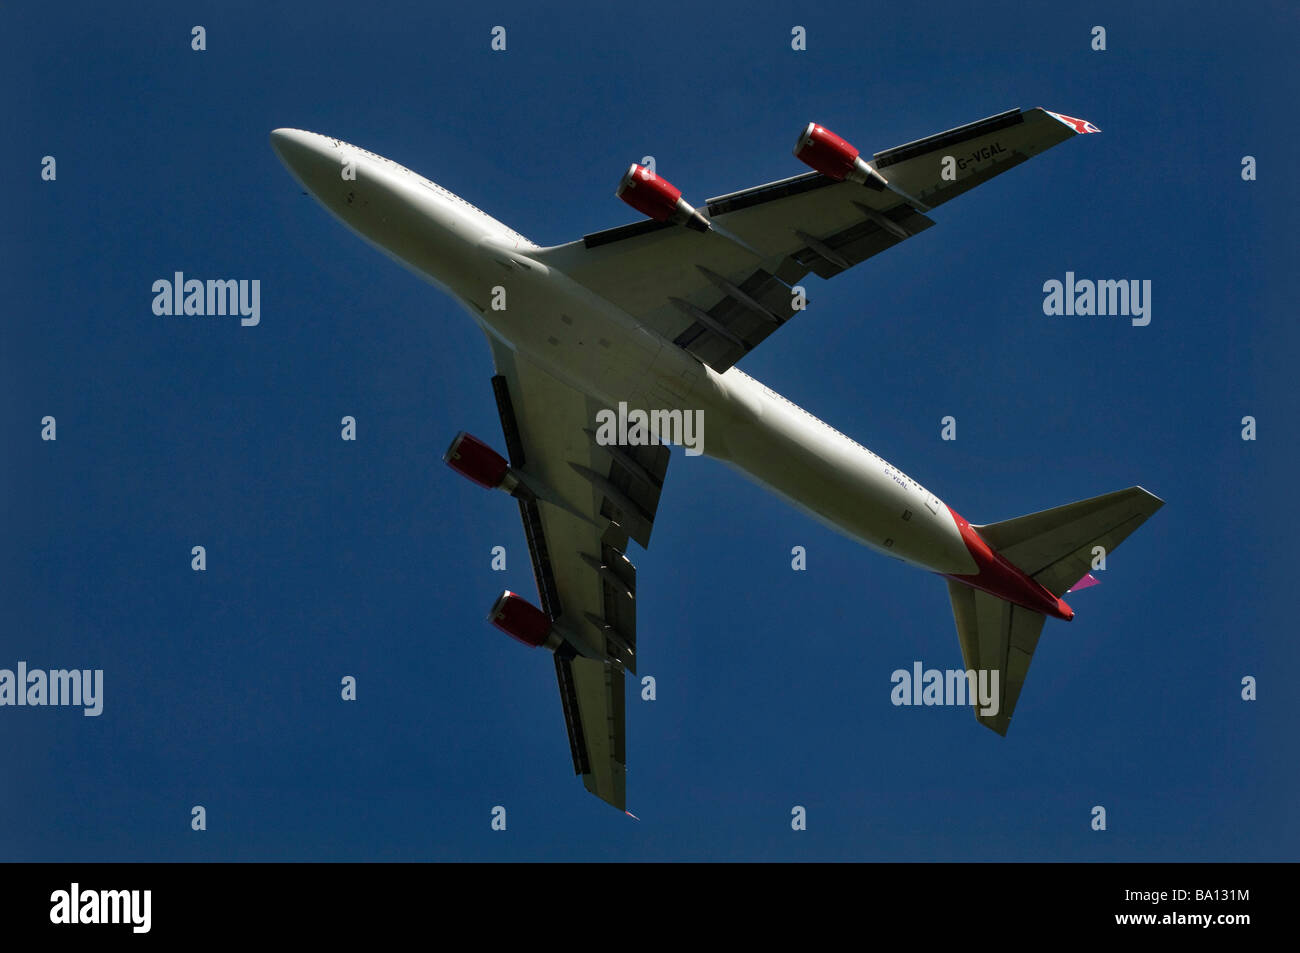 A Virgin Atlantic Boeing 747 Jumbo Jet takes off from Gatwick - Stock Image